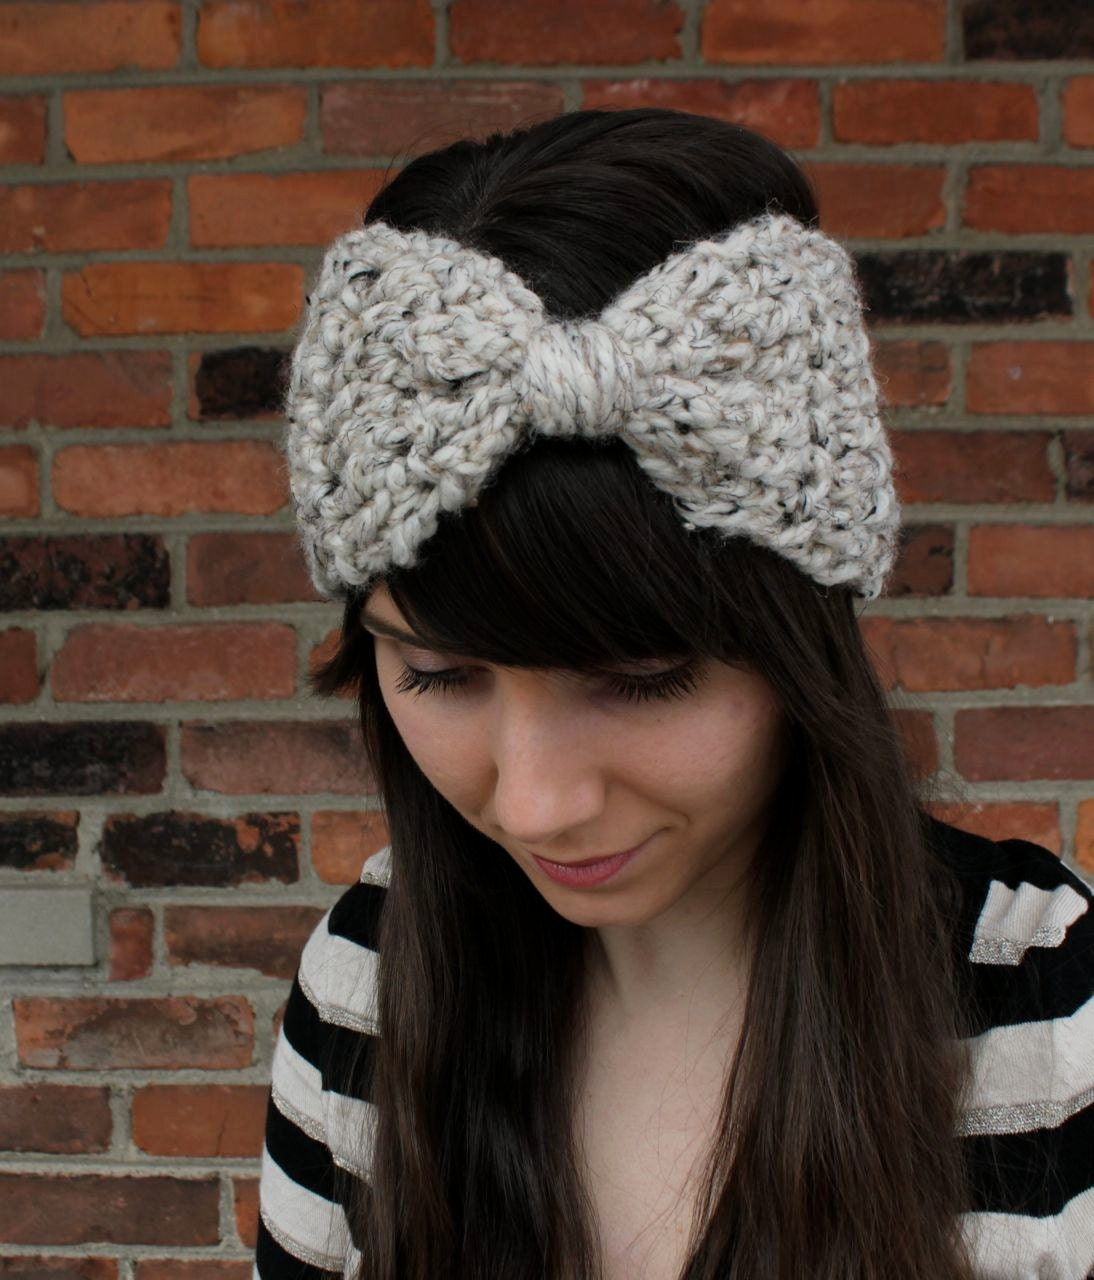 Free Crochet Pattern Headband Ear Warmer Button : CROCHET PATTERN Bow Ear Warmer Headband Crochet Ear Warmer